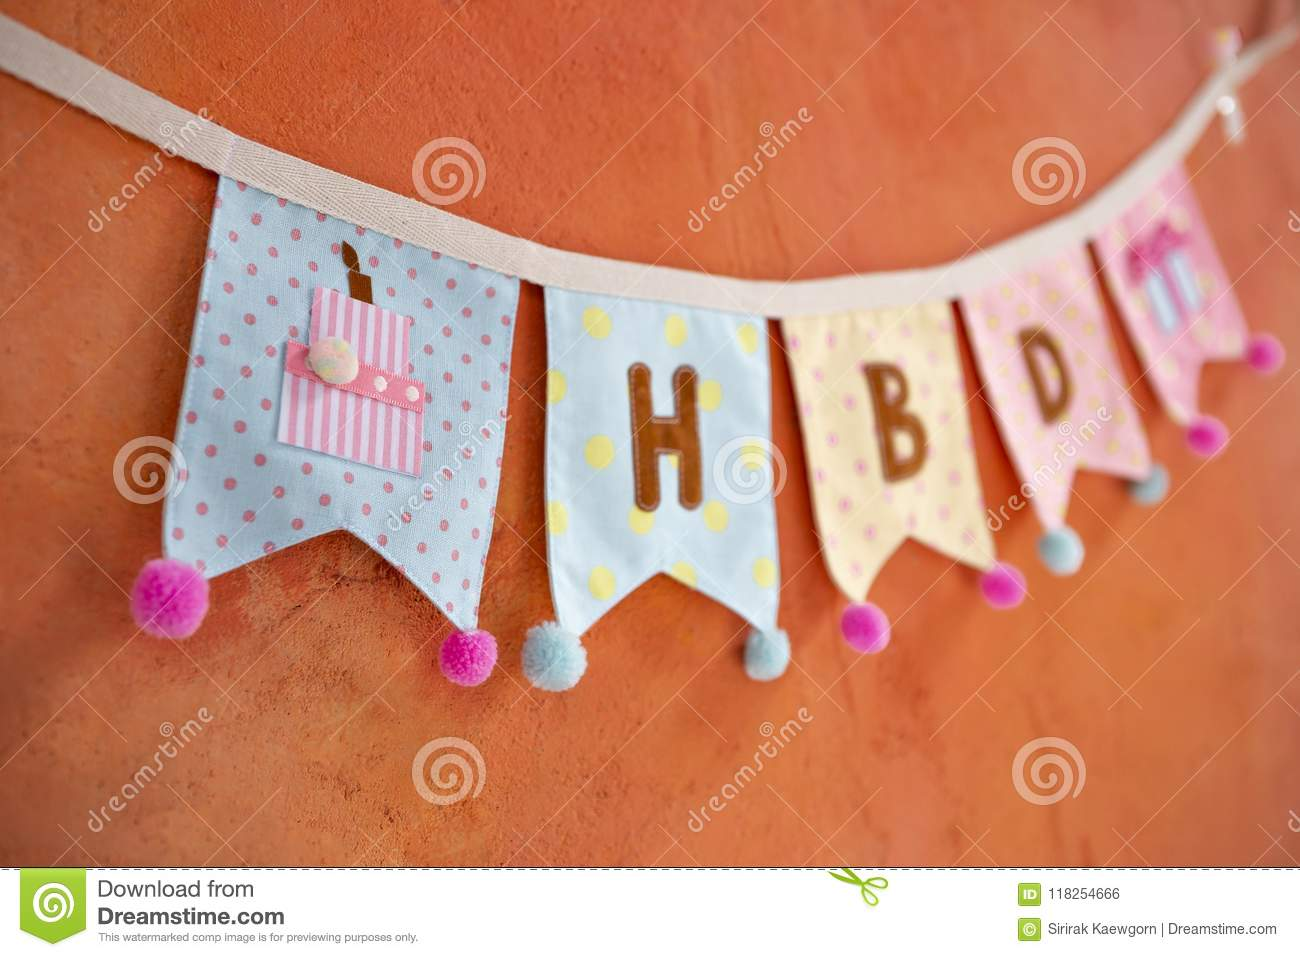 Design Fabric Birthday Party Flag Hanging On Orange Cement Wall